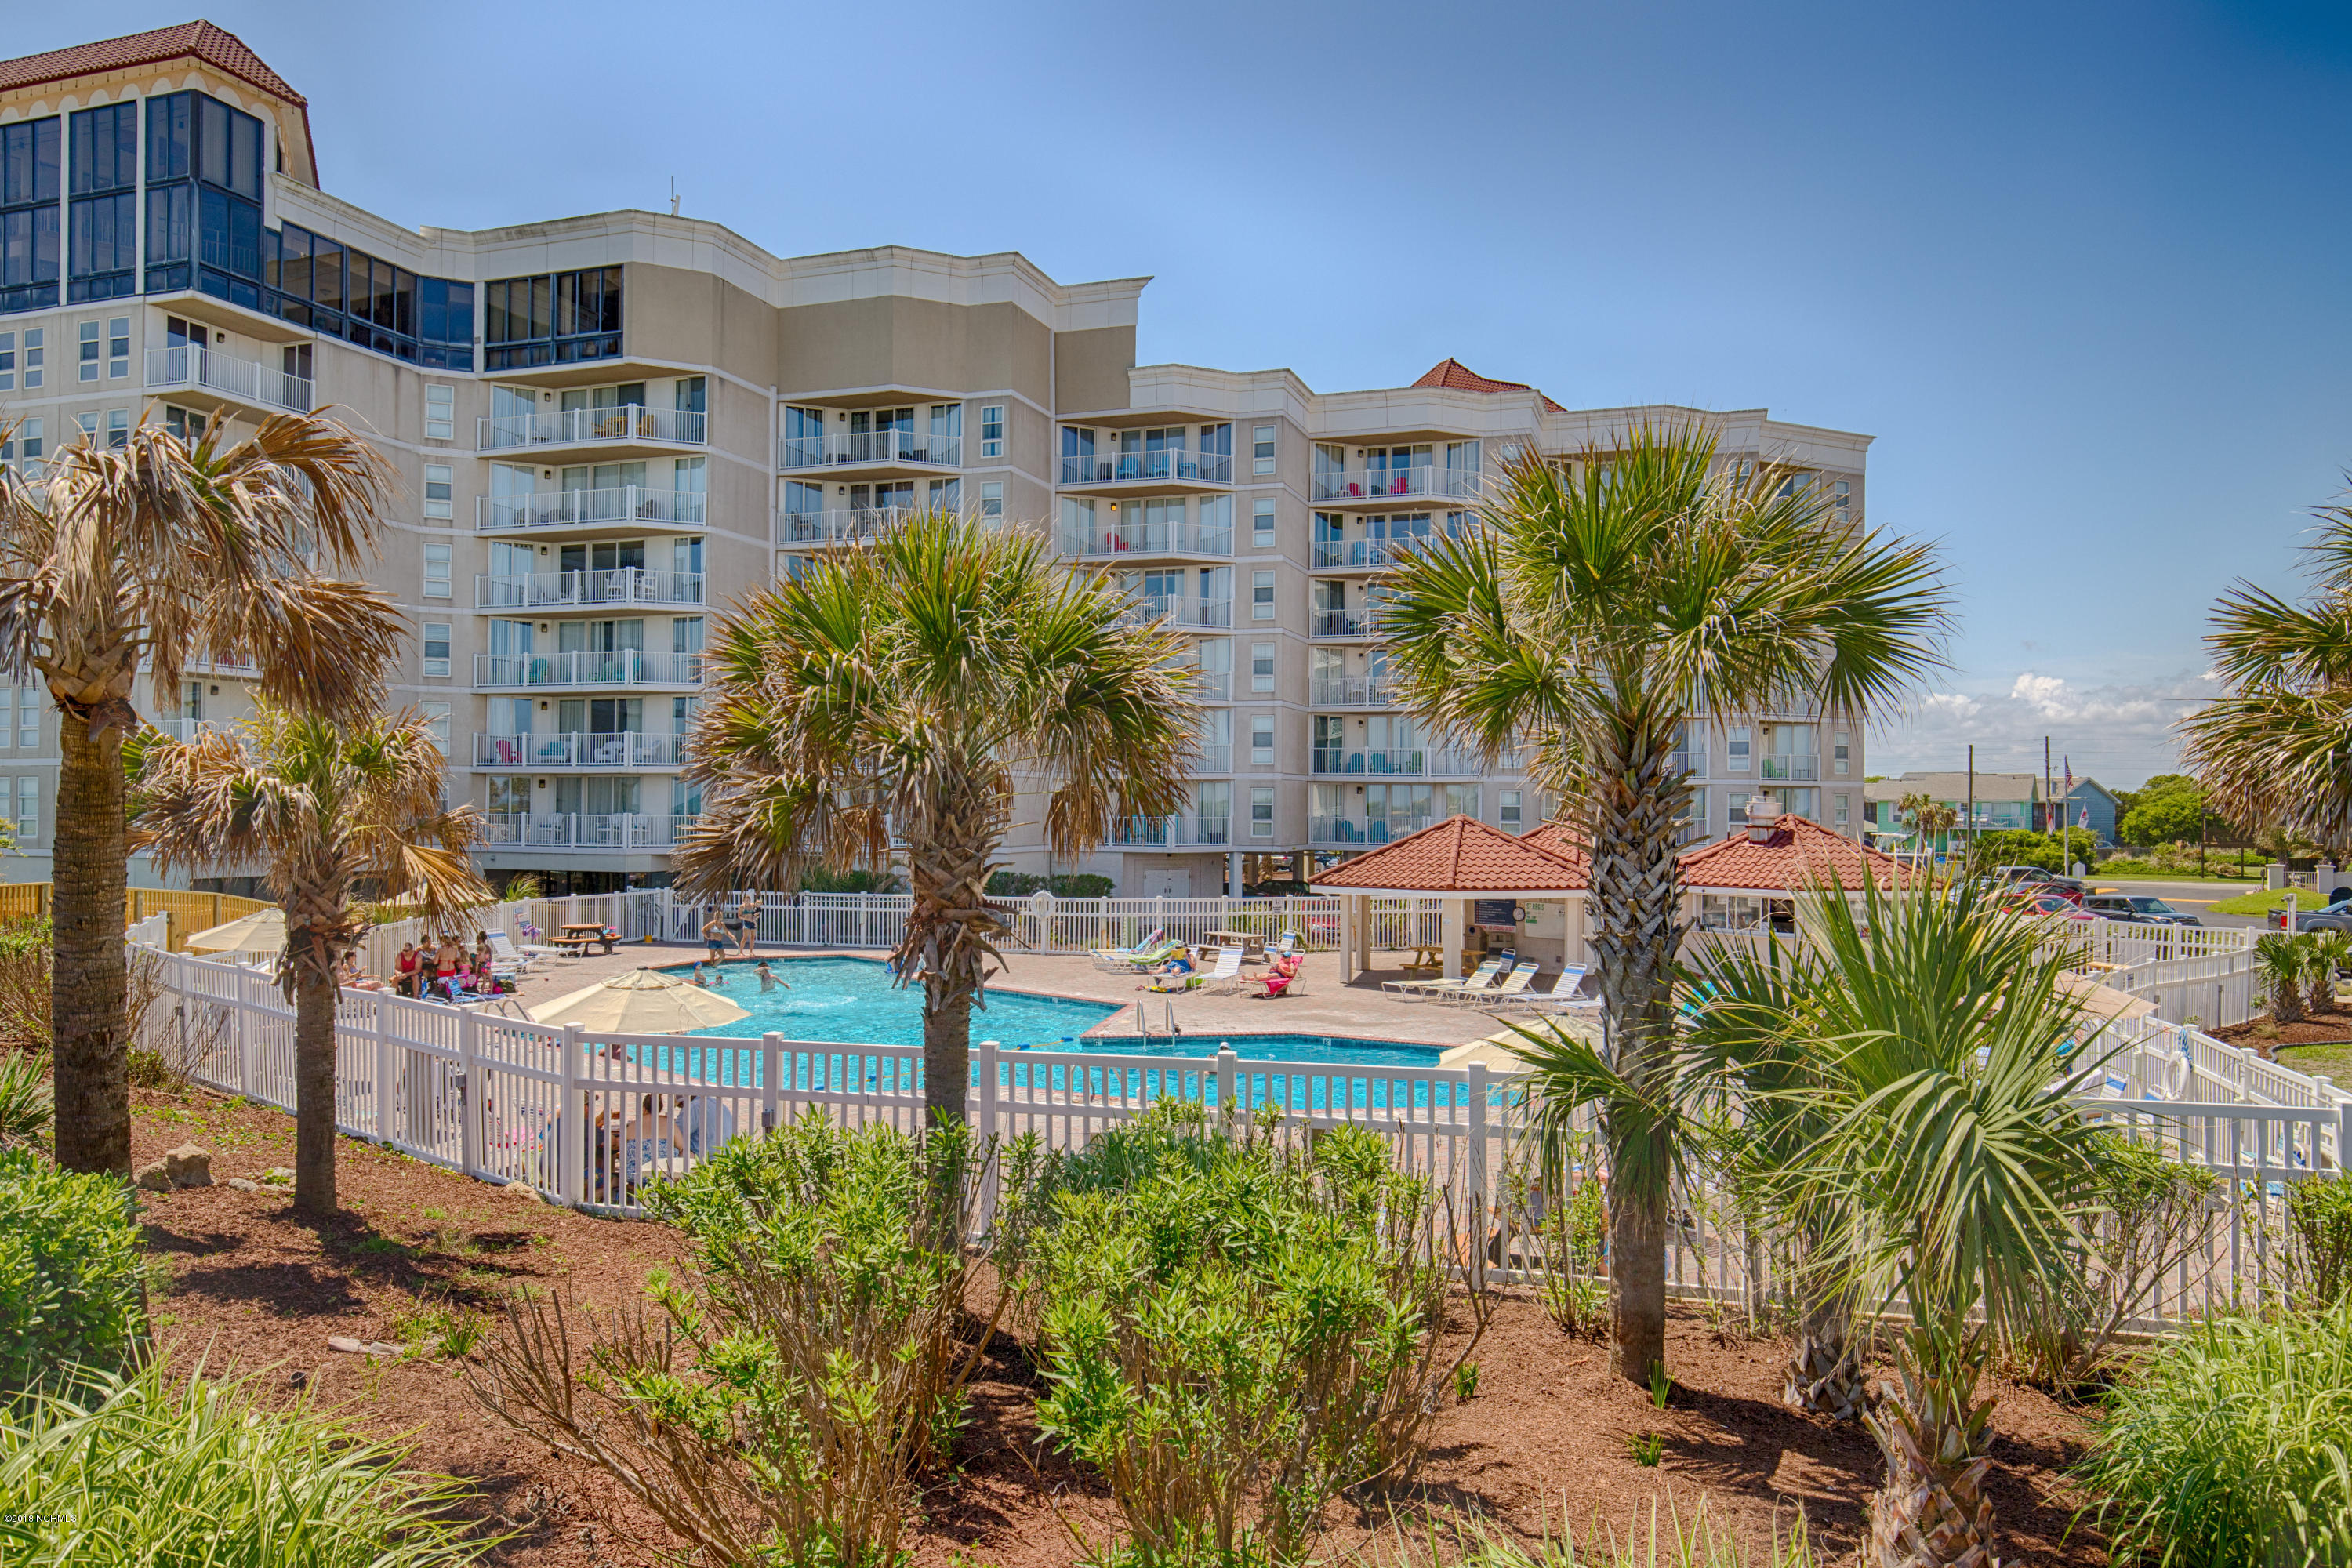 2000 New River Inlet Road, North Topsail Beach, North Carolina, 3 Bedrooms Bedrooms, 5 Rooms Rooms,2 BathroomsBathrooms,Condominium,For sale,New River Inlet,100143257